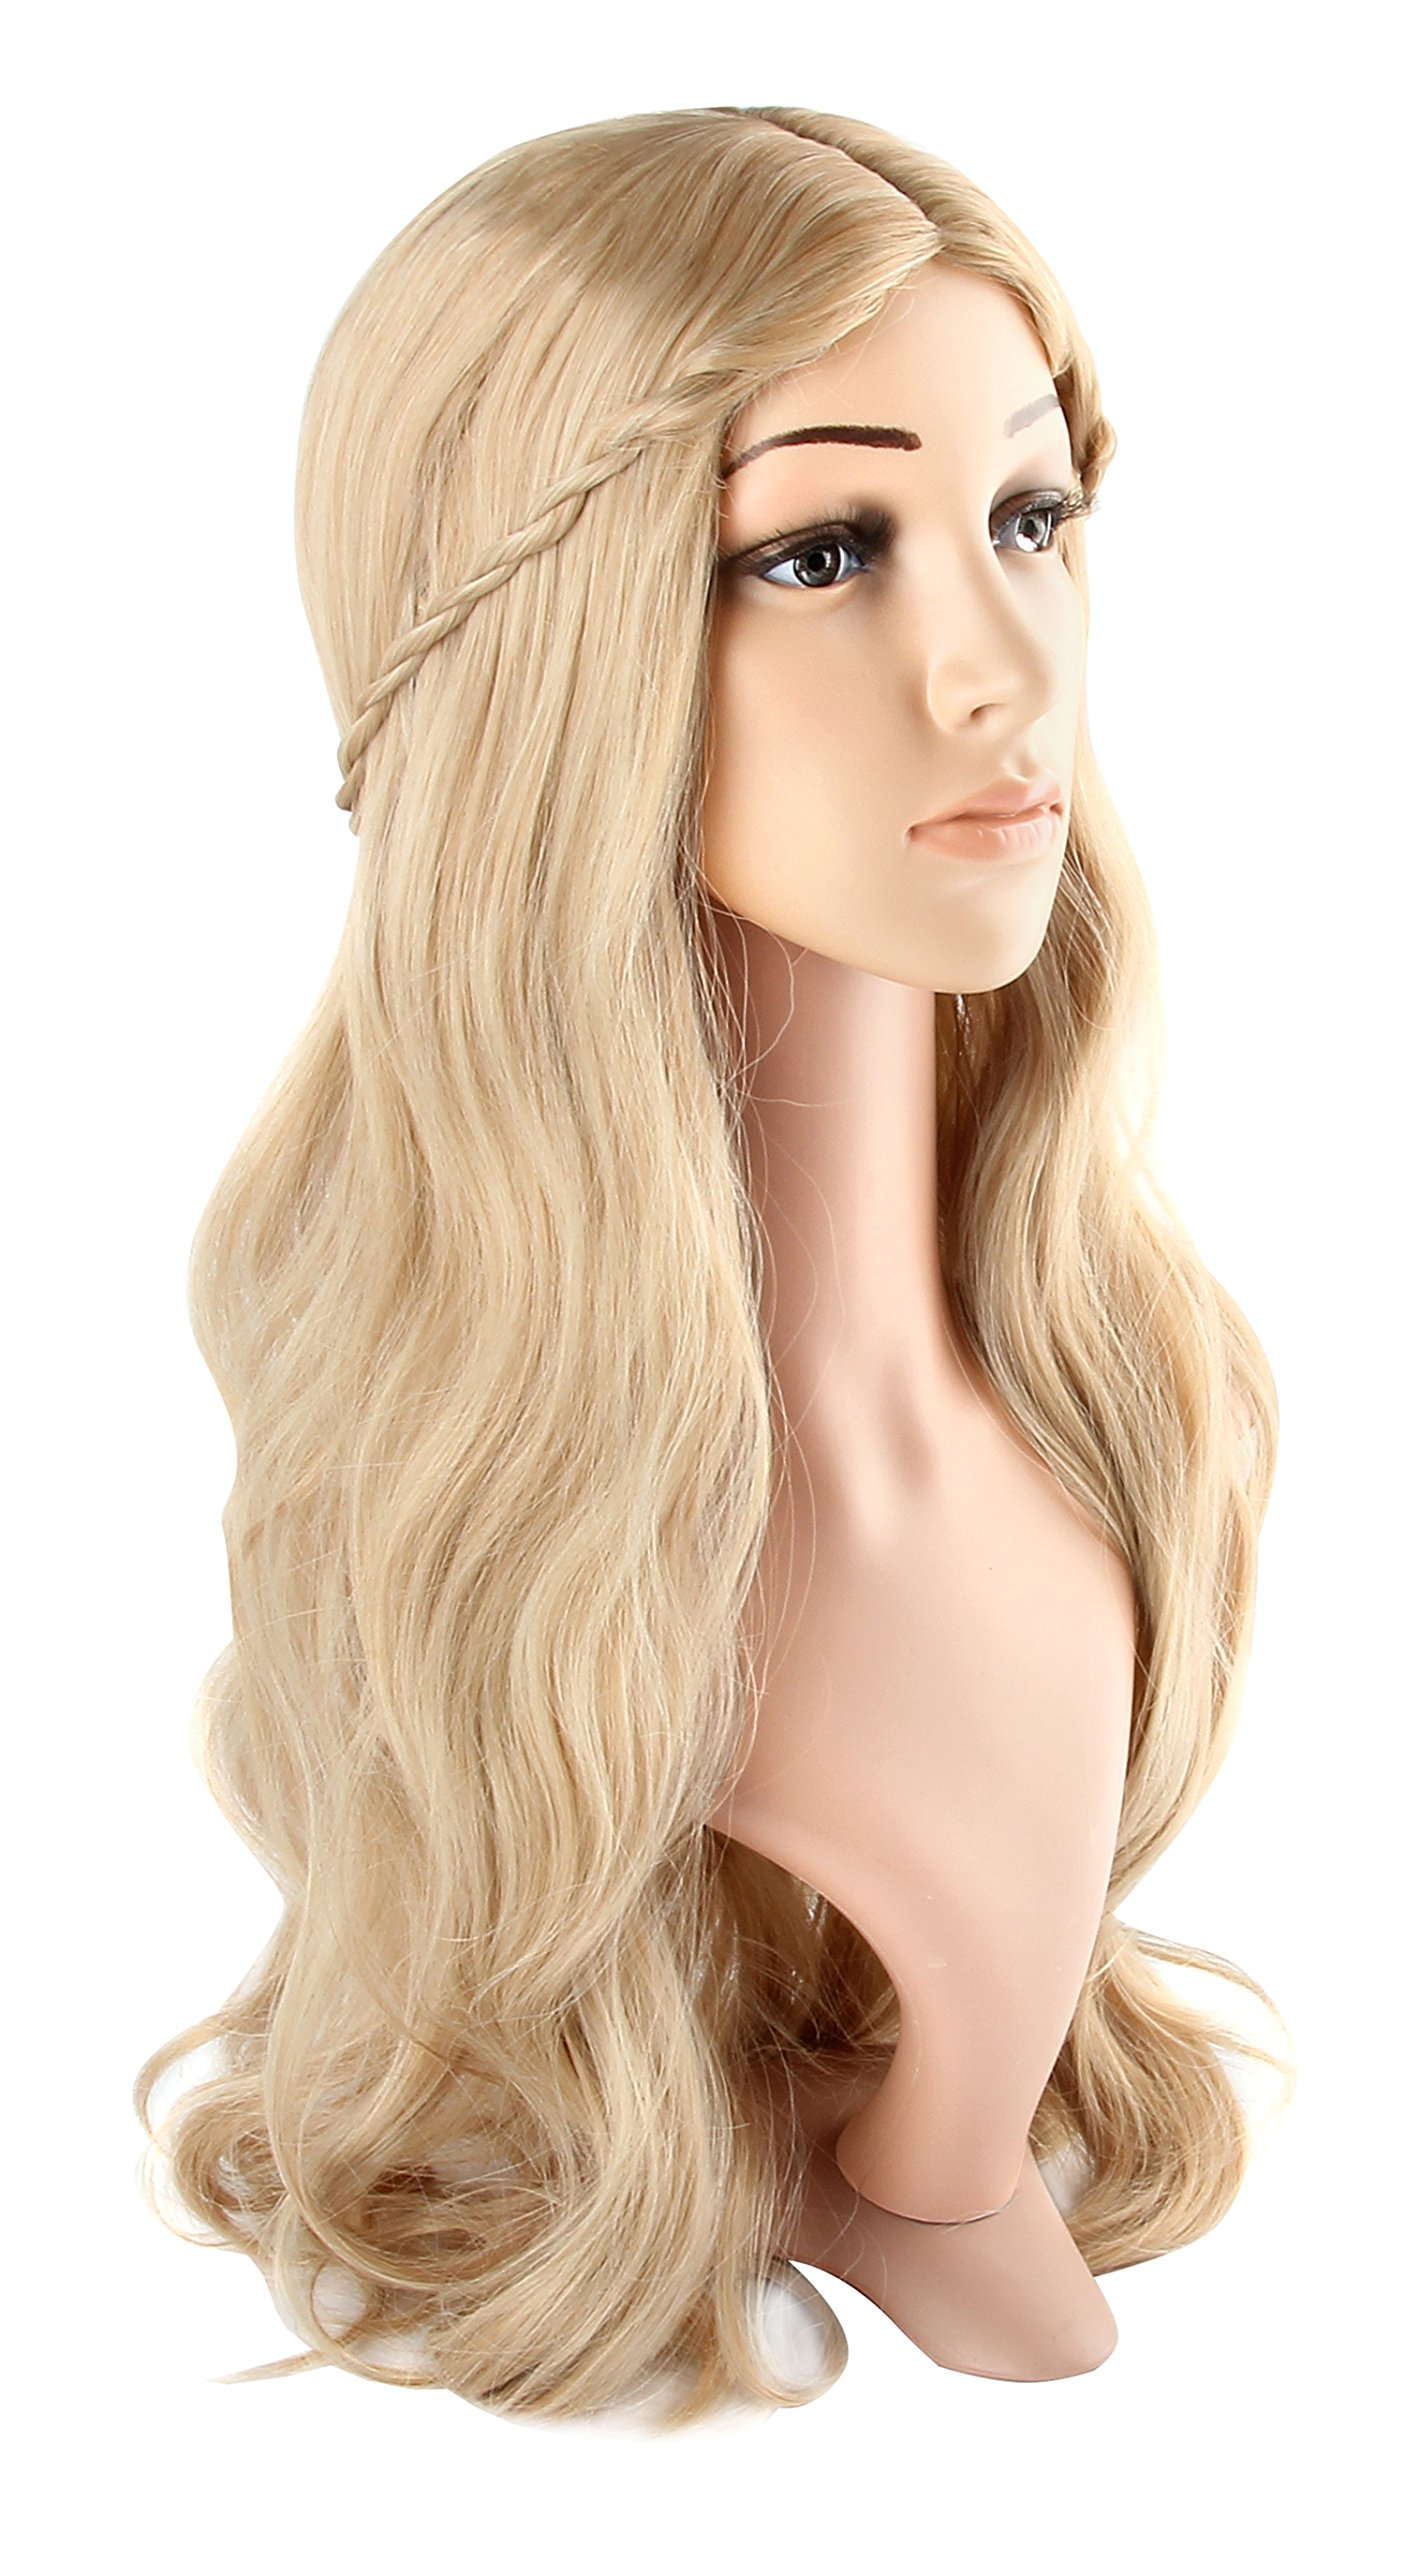 Acecharming Blonde Curly Wig Women's Long Curly Wigs Cosplay Party Wig with Wig Cap(Light Blonde)